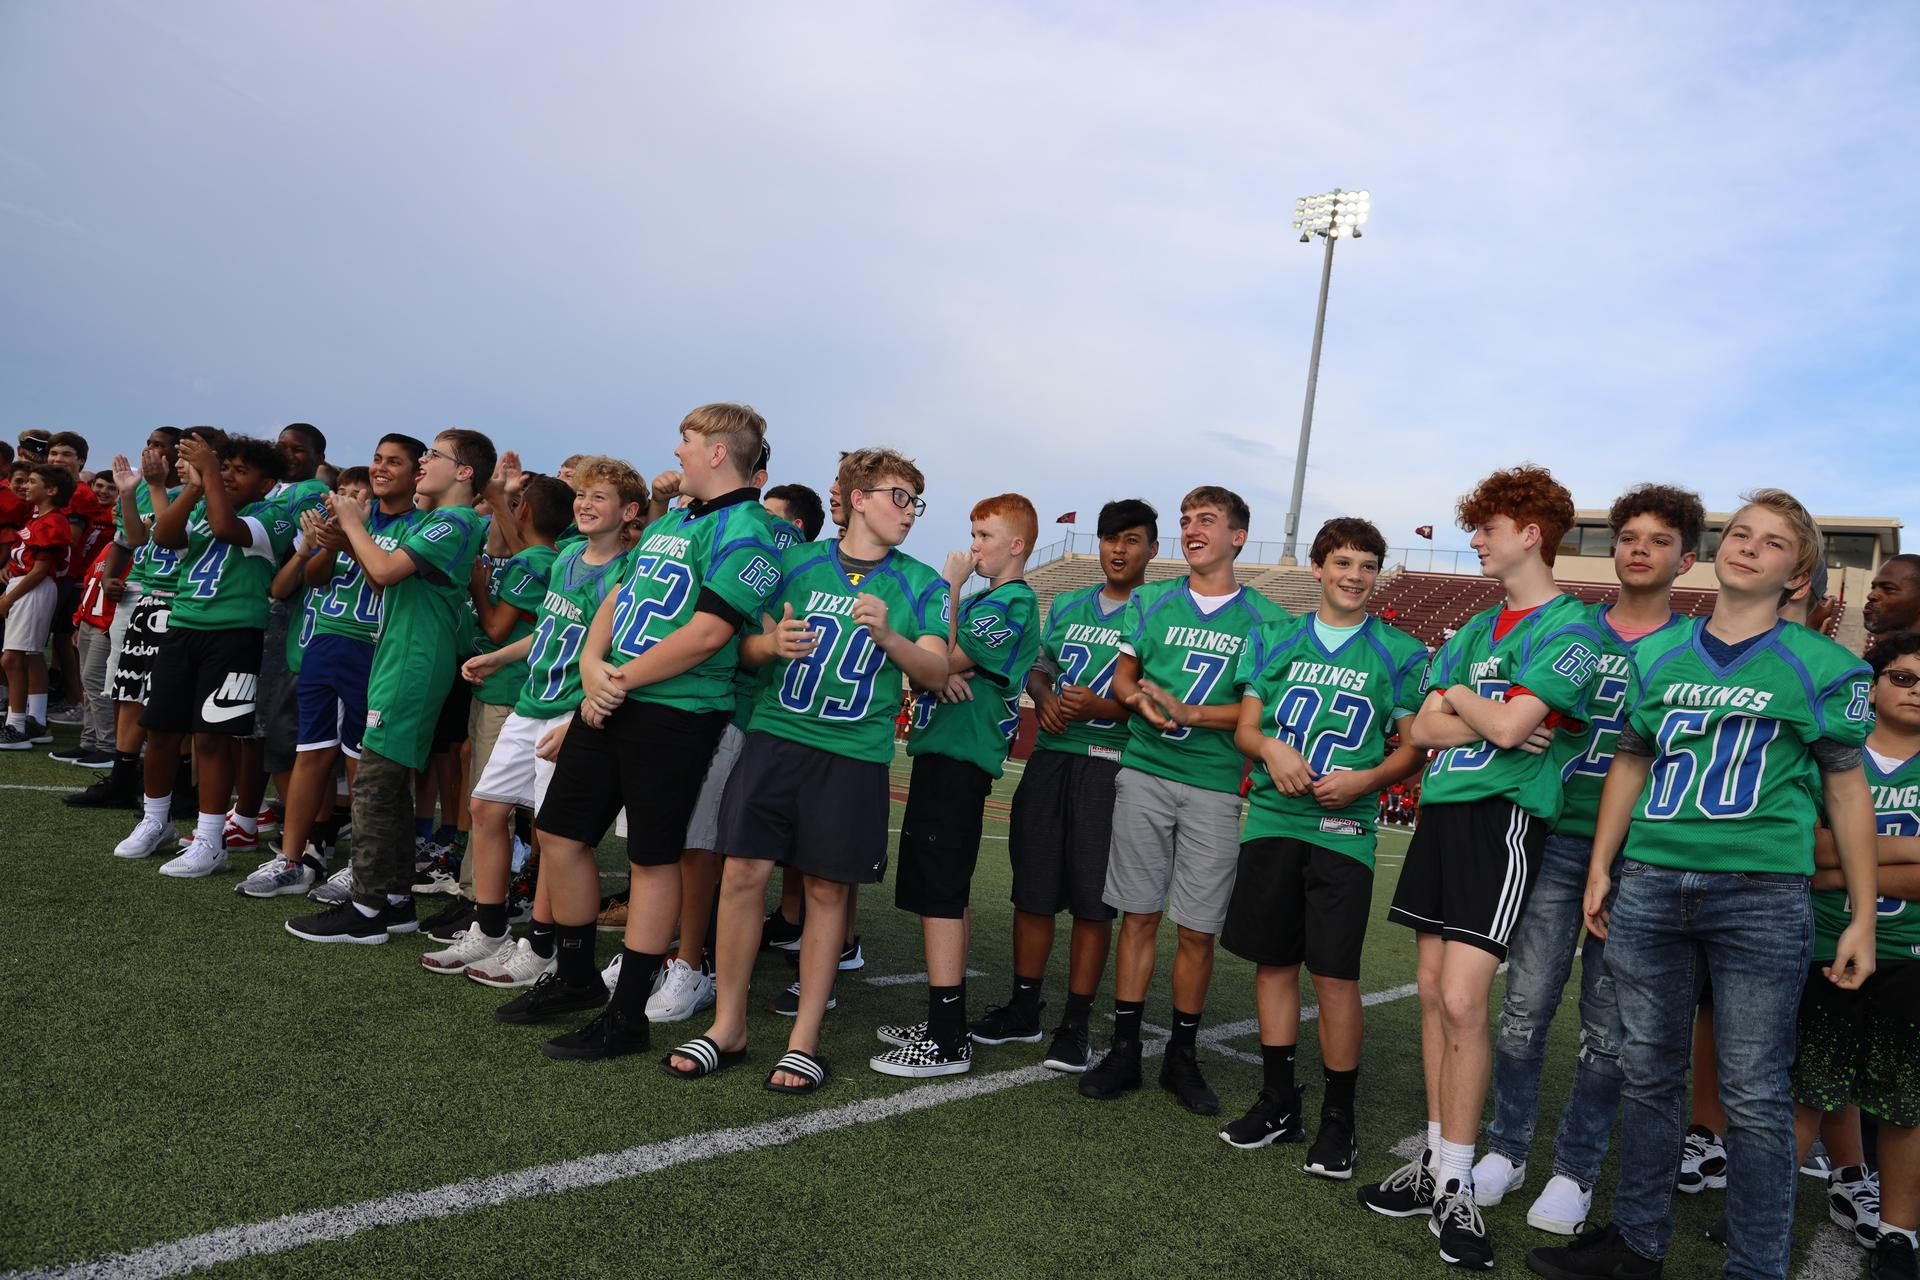 Photo from the opening game of the 2019 Varsity Deer football season!